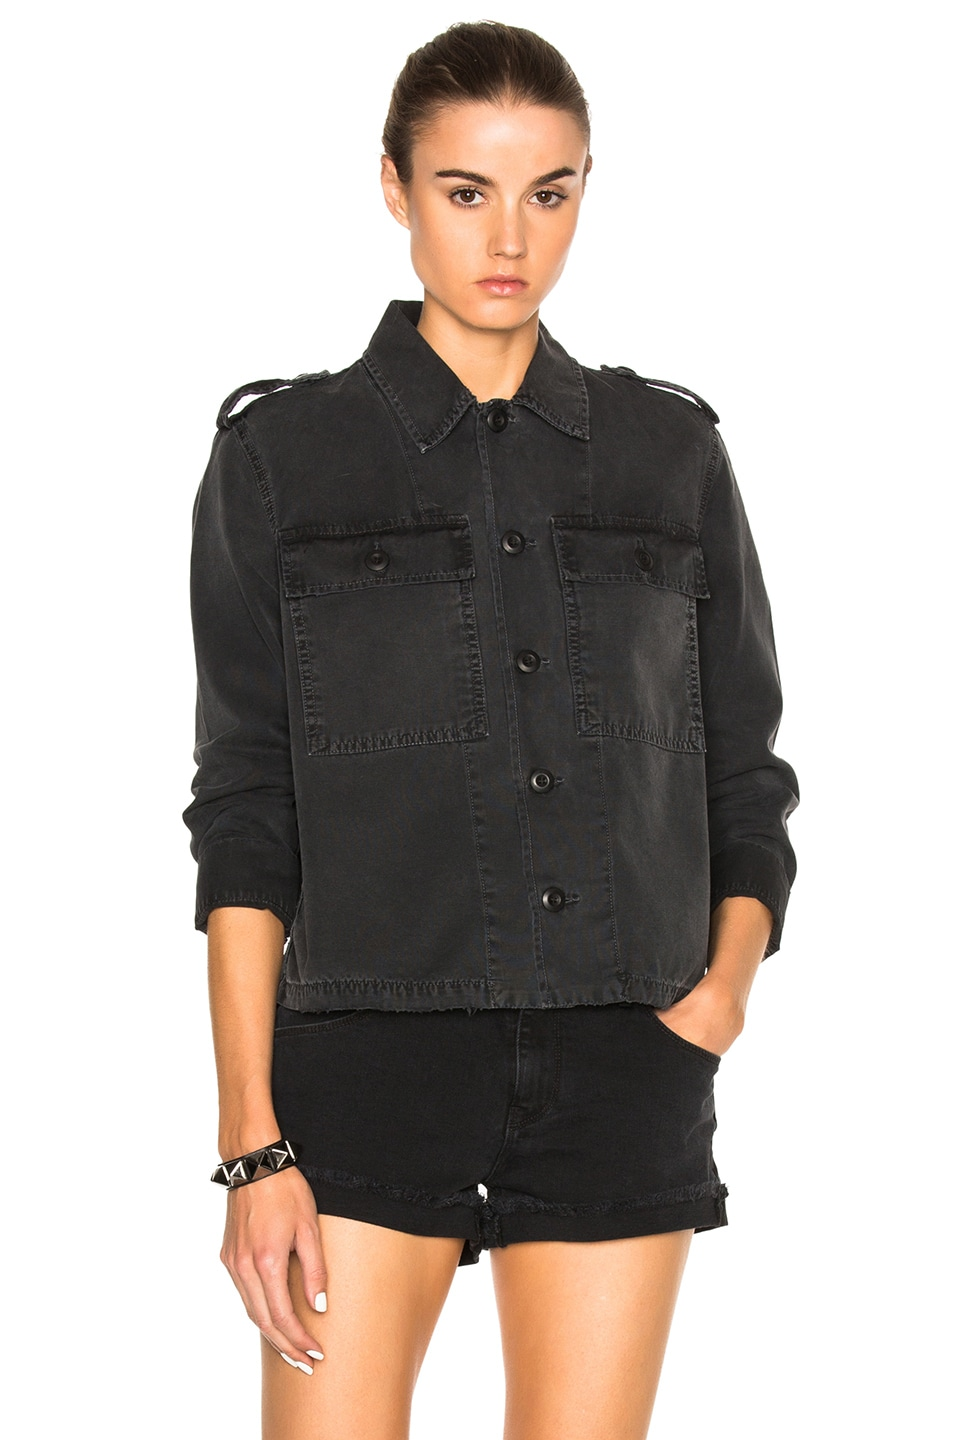 da0d72723e Image 2 of AMO Army Shirt Jacket in Washed Black